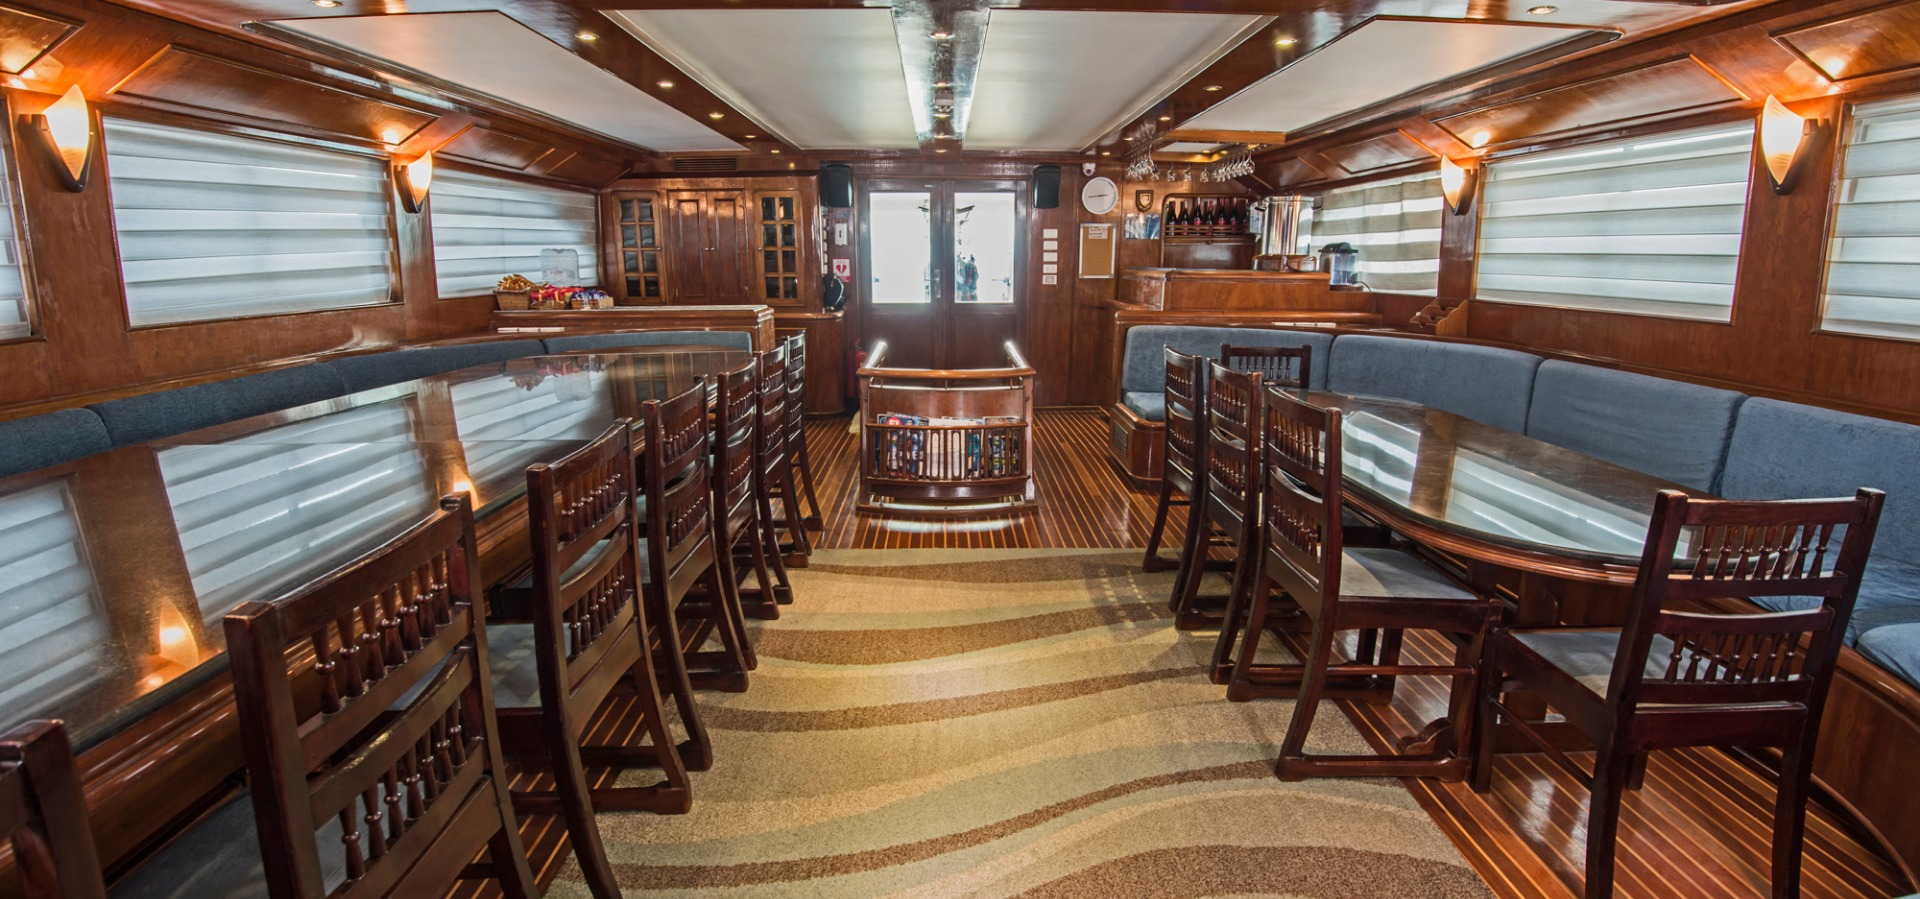 M/Y blue Fin saloon and liveaboard dining area